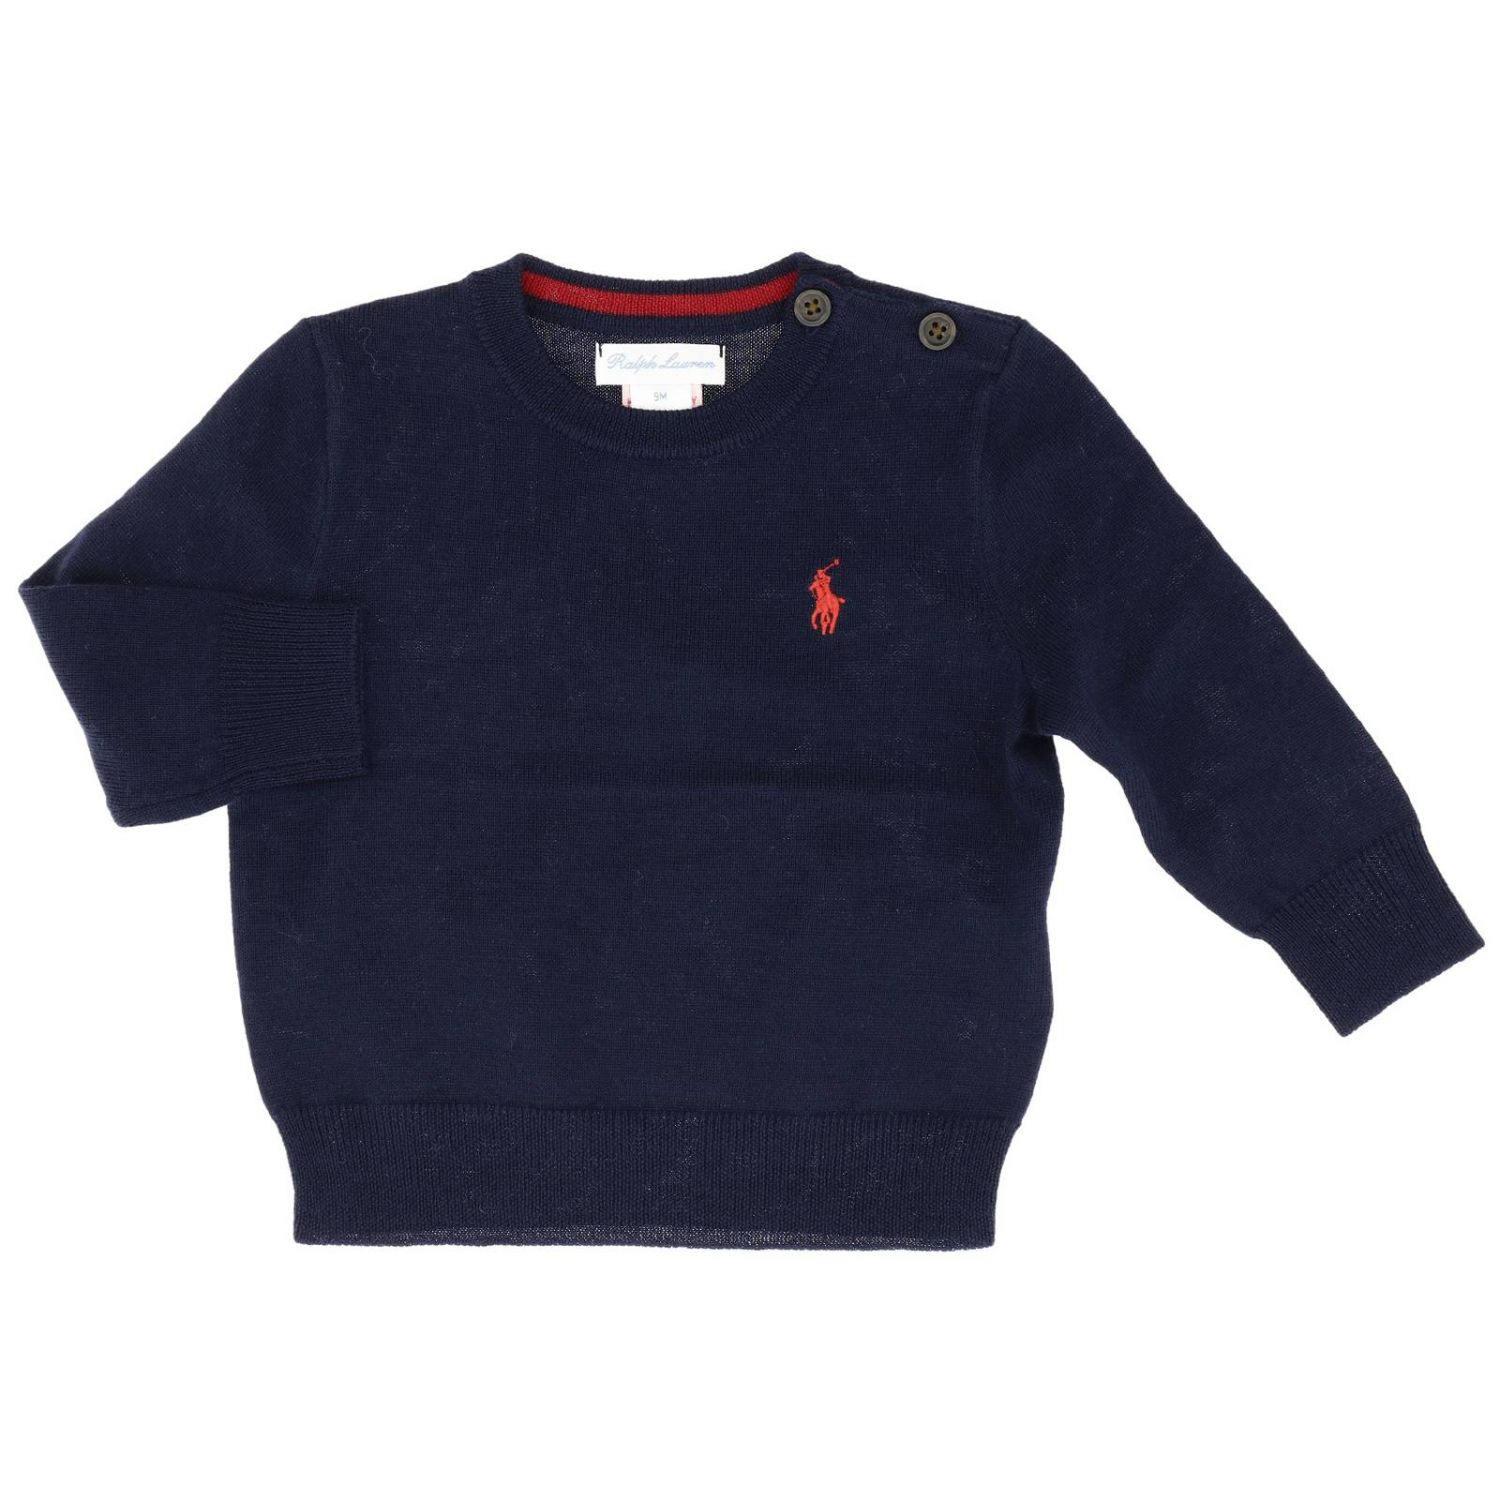 Jumper Polo Ralph Lauren Infant: Jumper kids Polo Ralph Lauren Infant blue 1